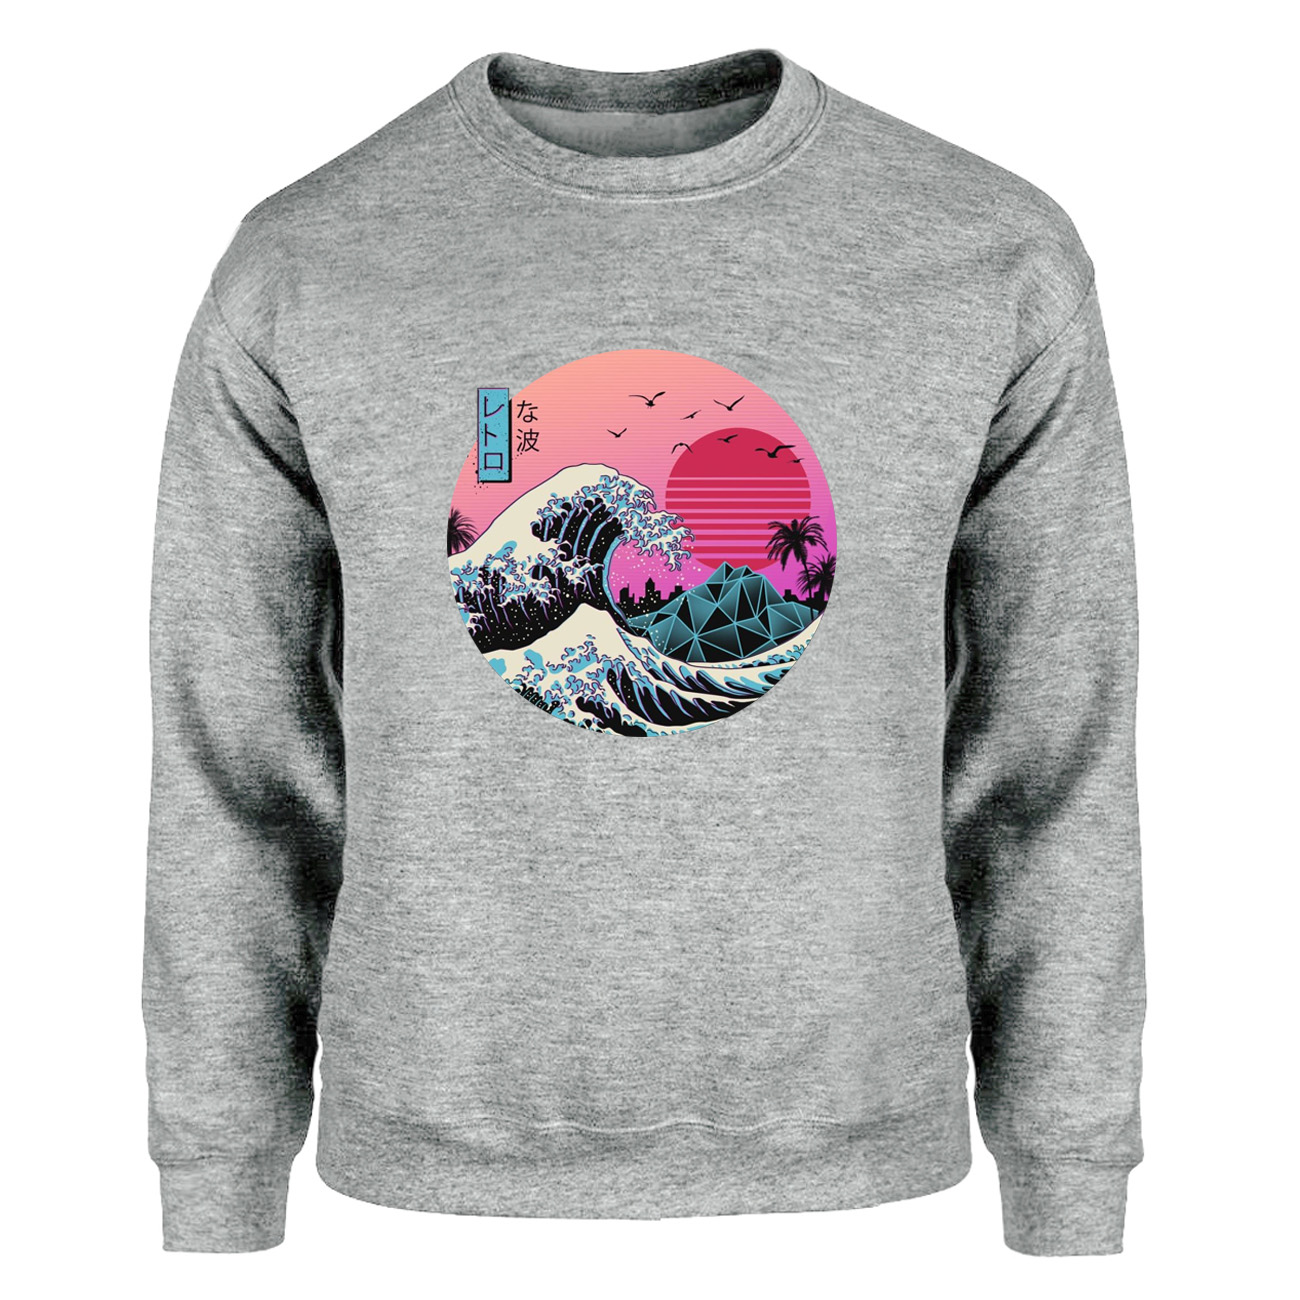 The Great Retro Wave Japan Anime Vaporwave Kanagawa Sweatshirts Men Crewneck Hoodies Painting Raglan Harajuku Fleece Streetwear